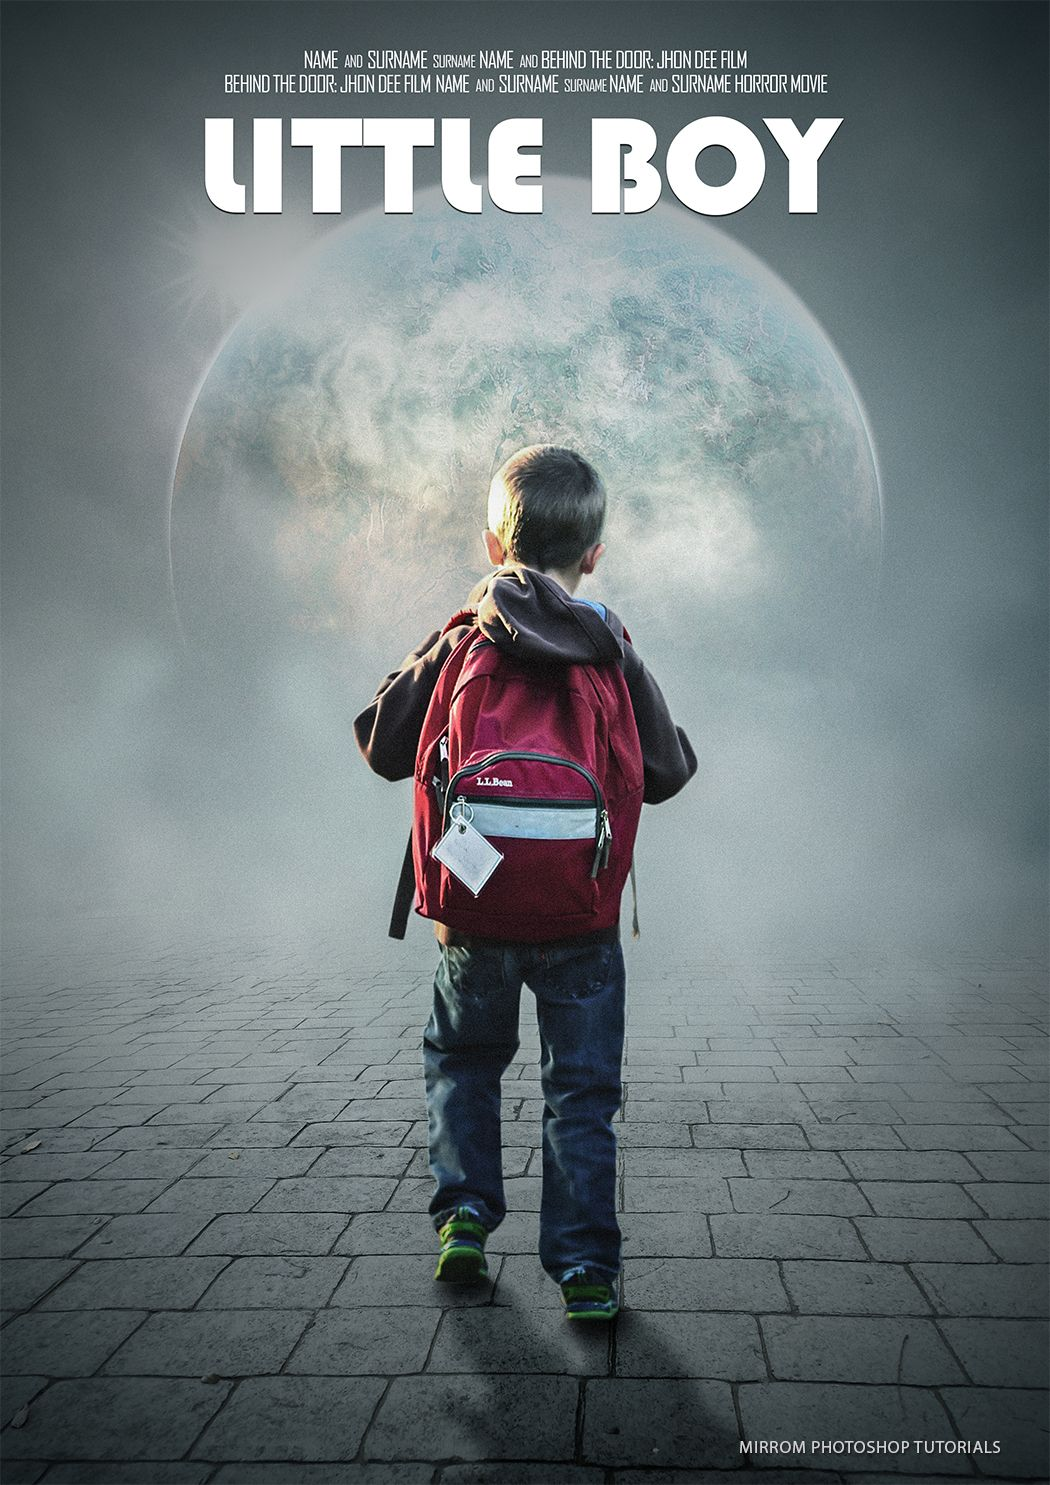 Poster design in photoshop - Today S Photoshop Tuorial I Will Make A Movie Poster Titled Little Boy In Adobe Photoshop Cc Movie Poster Photoshop Tutorials Pinterest Boy Movie